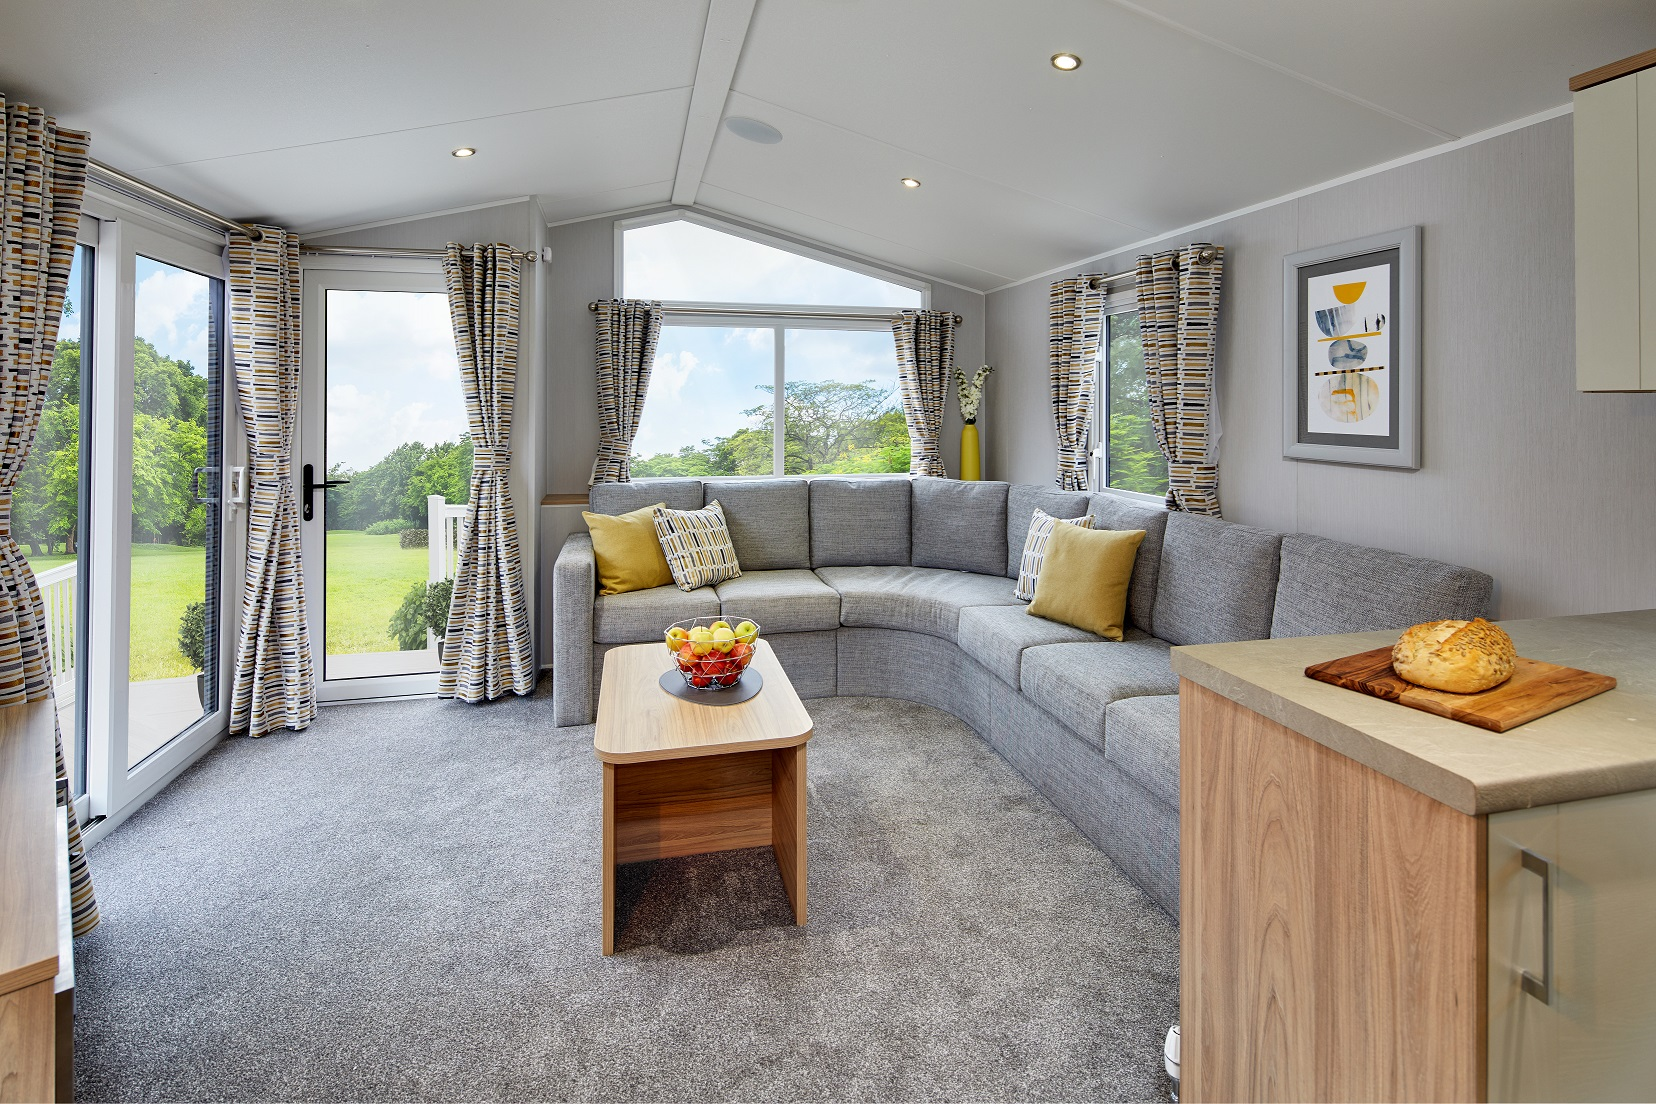 Willerby Castleton: Static Caravans and Holiday Homes for Sale on Caravan Parks, Barnard Castle, Durham and Weardale Large Image 1